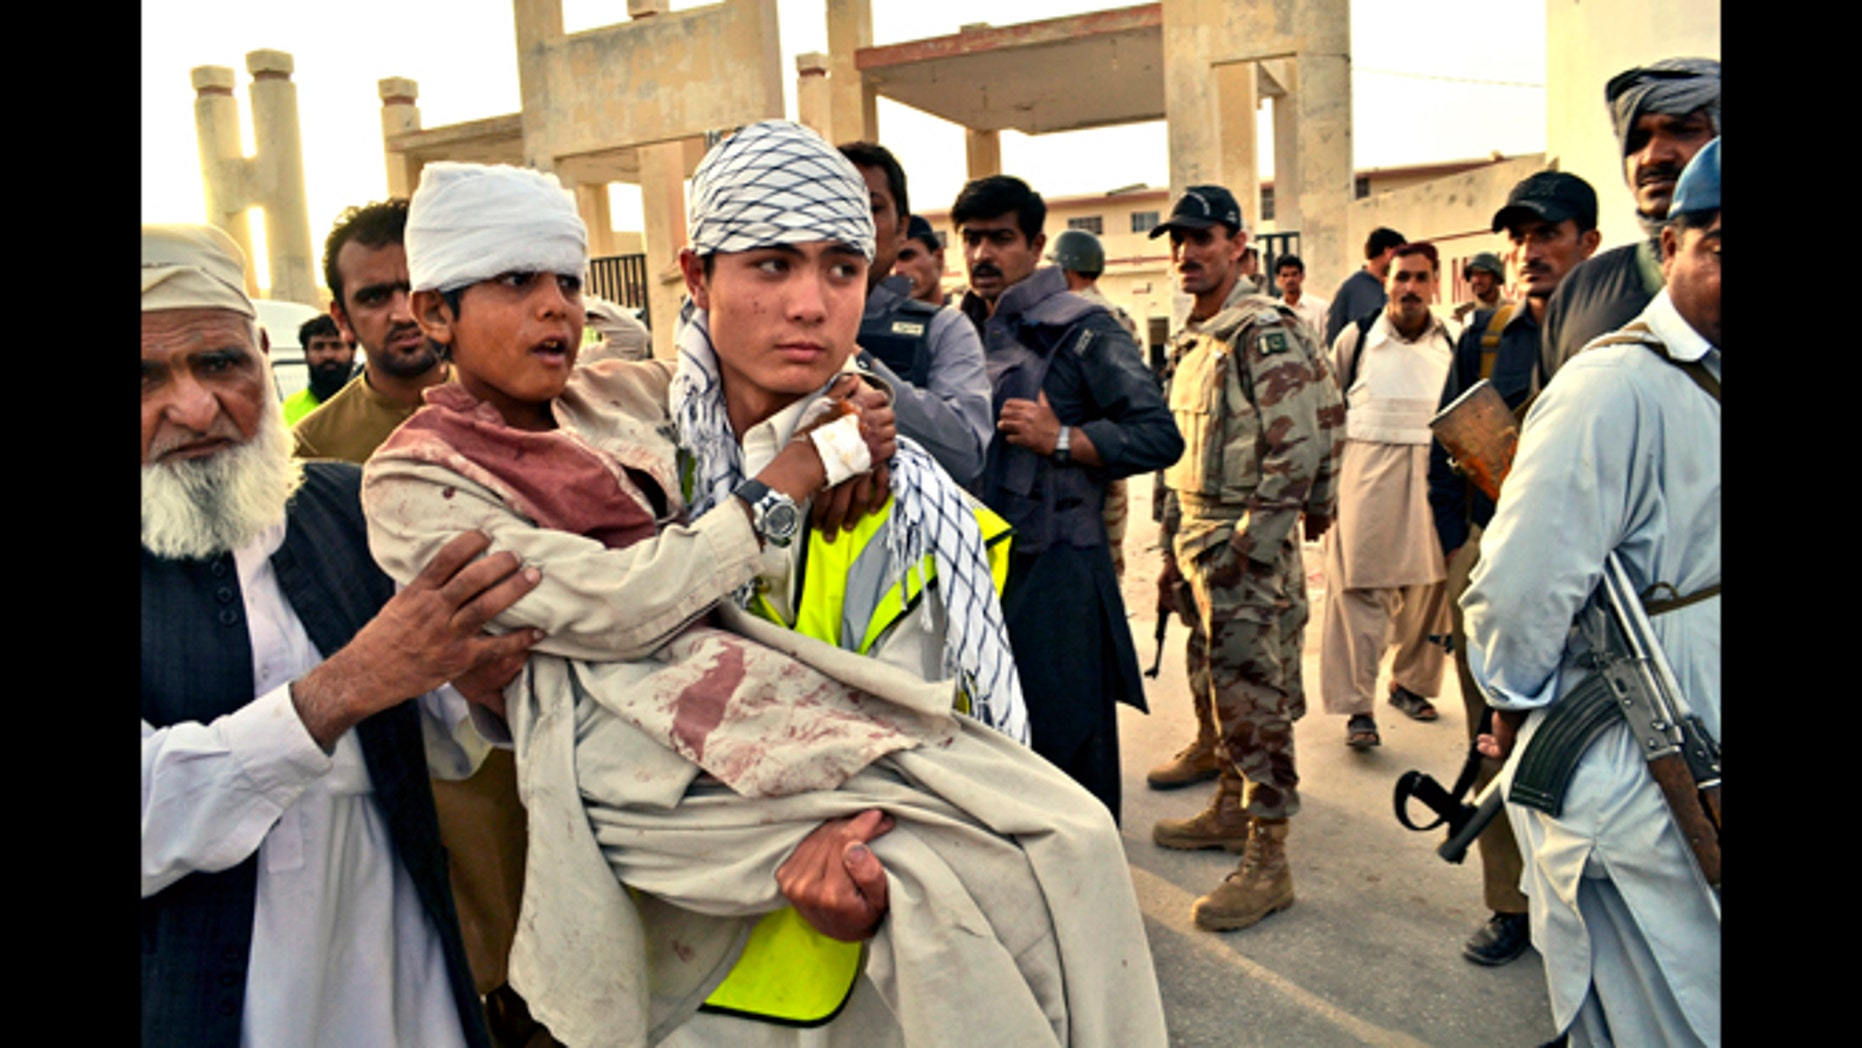 June 15, 2013: A Pakistani boy who was injured by gunmen is carried to a vehicle outside a hospital in Quetta, Pakistan. Gunmen took over parts of a hospital in southwestern Pakistan Saturday after a bomb went off inside its emergency room, officials said.